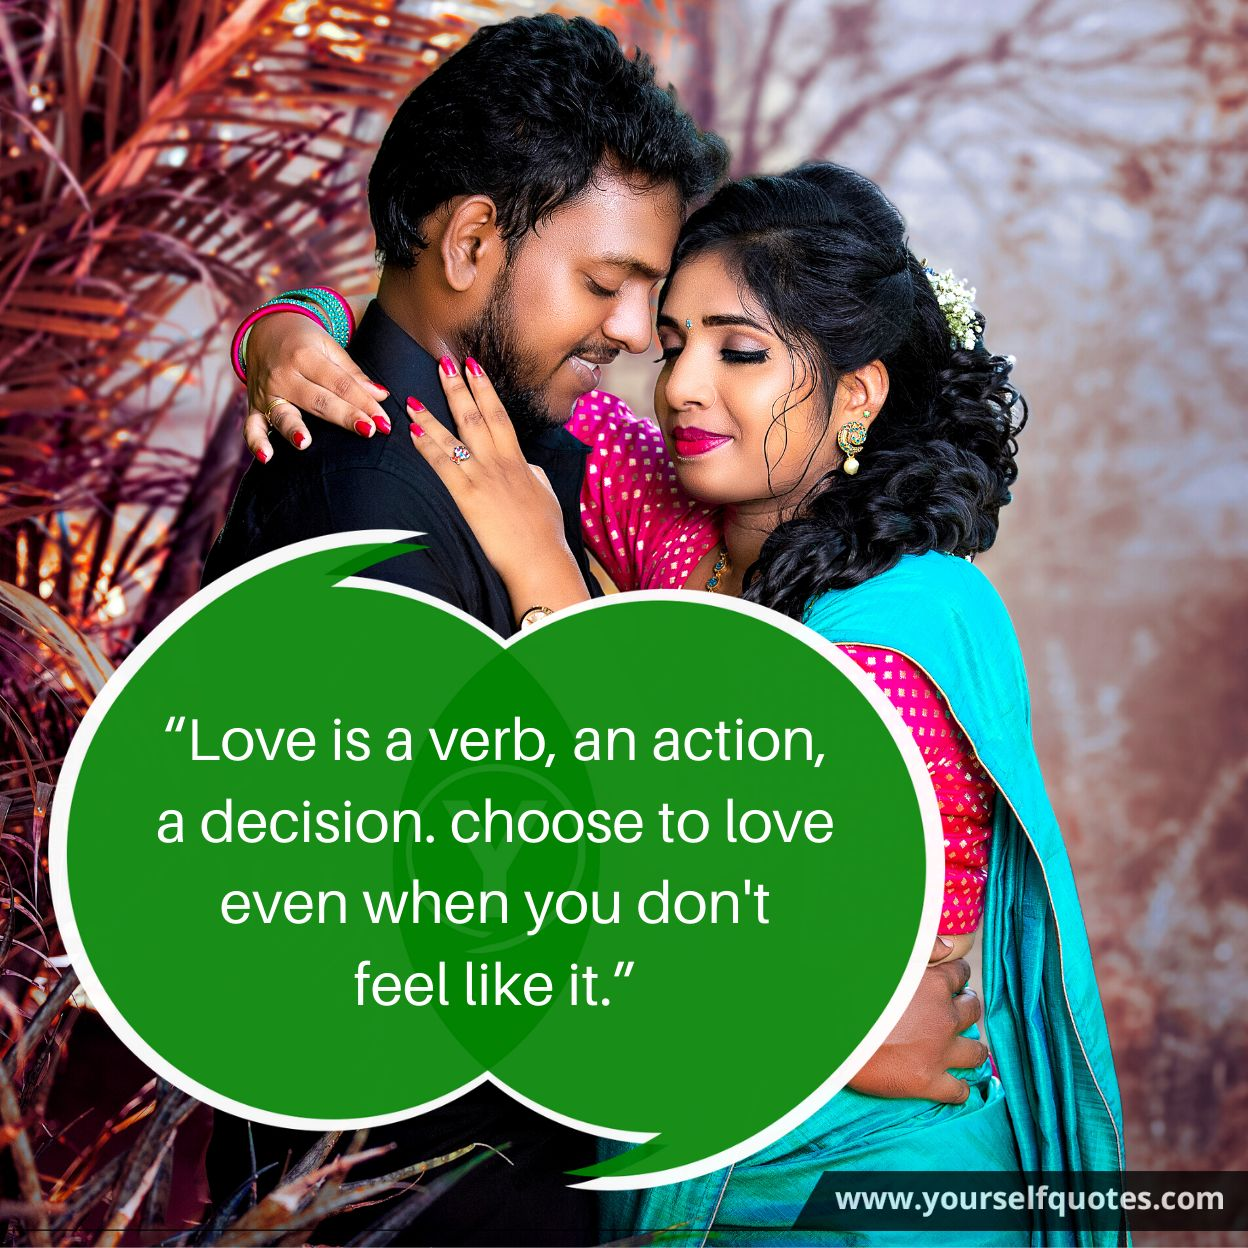 New Quotes on Love